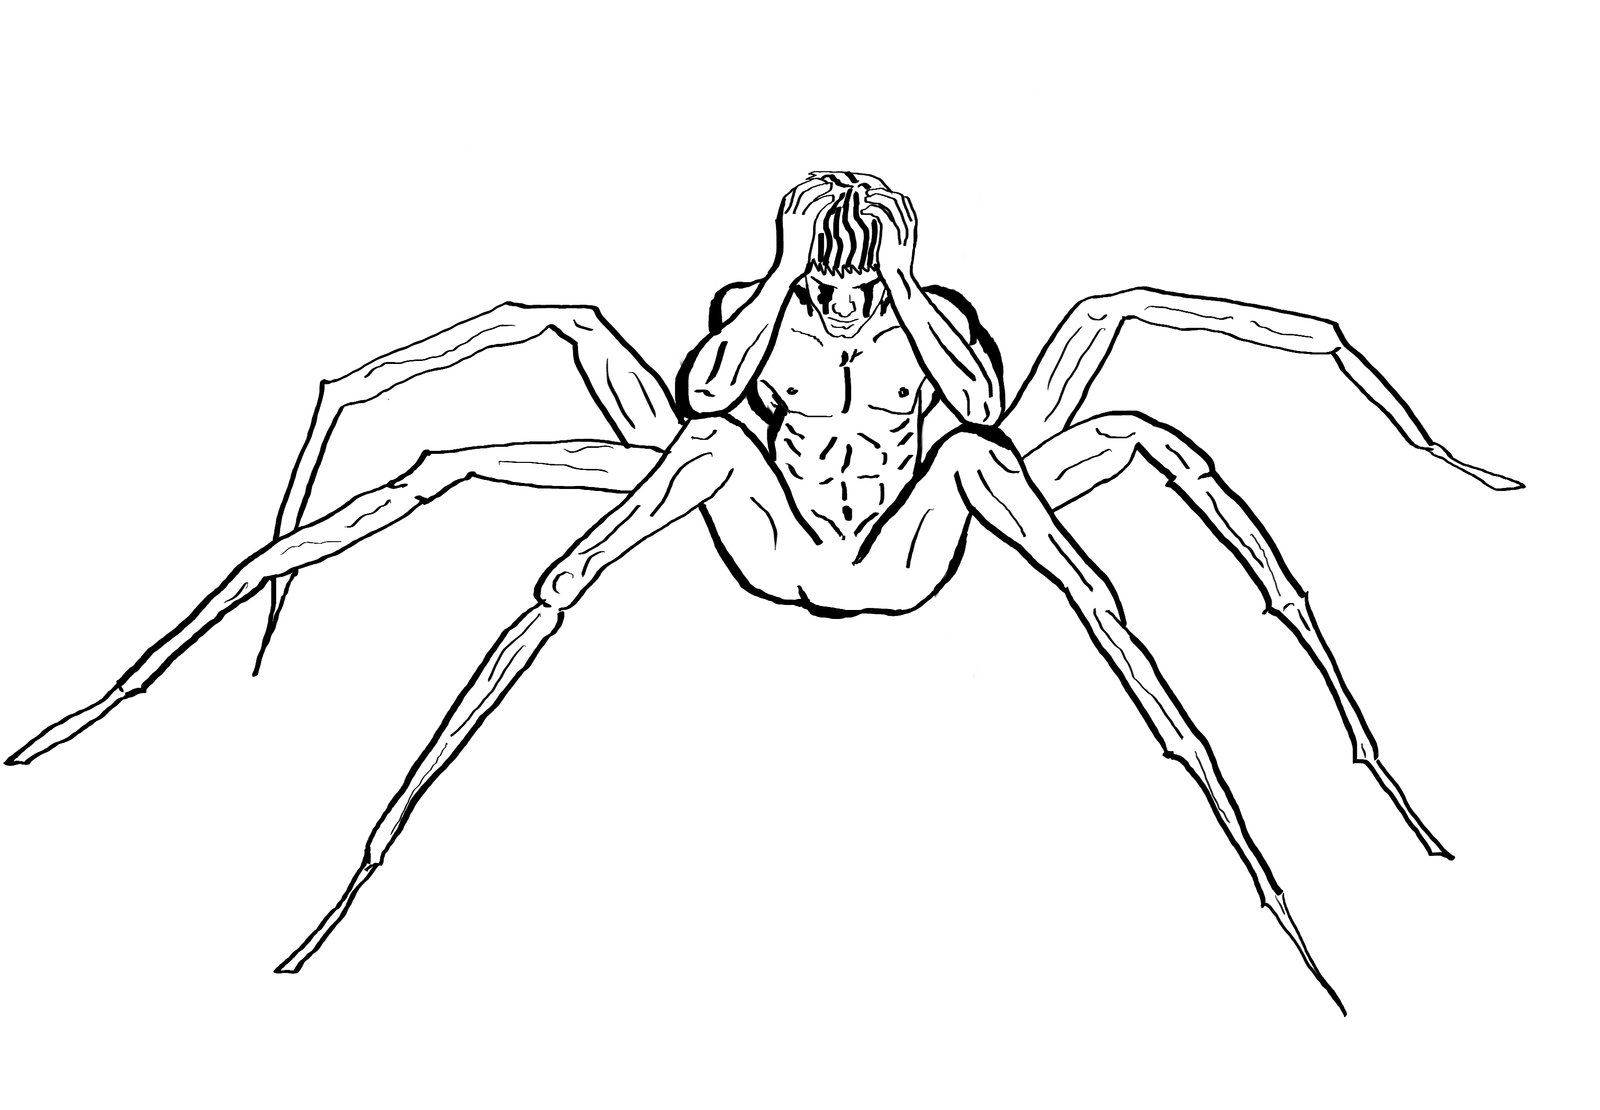 Drawn spider sketched Sketch Spider Drawing Pencil Art